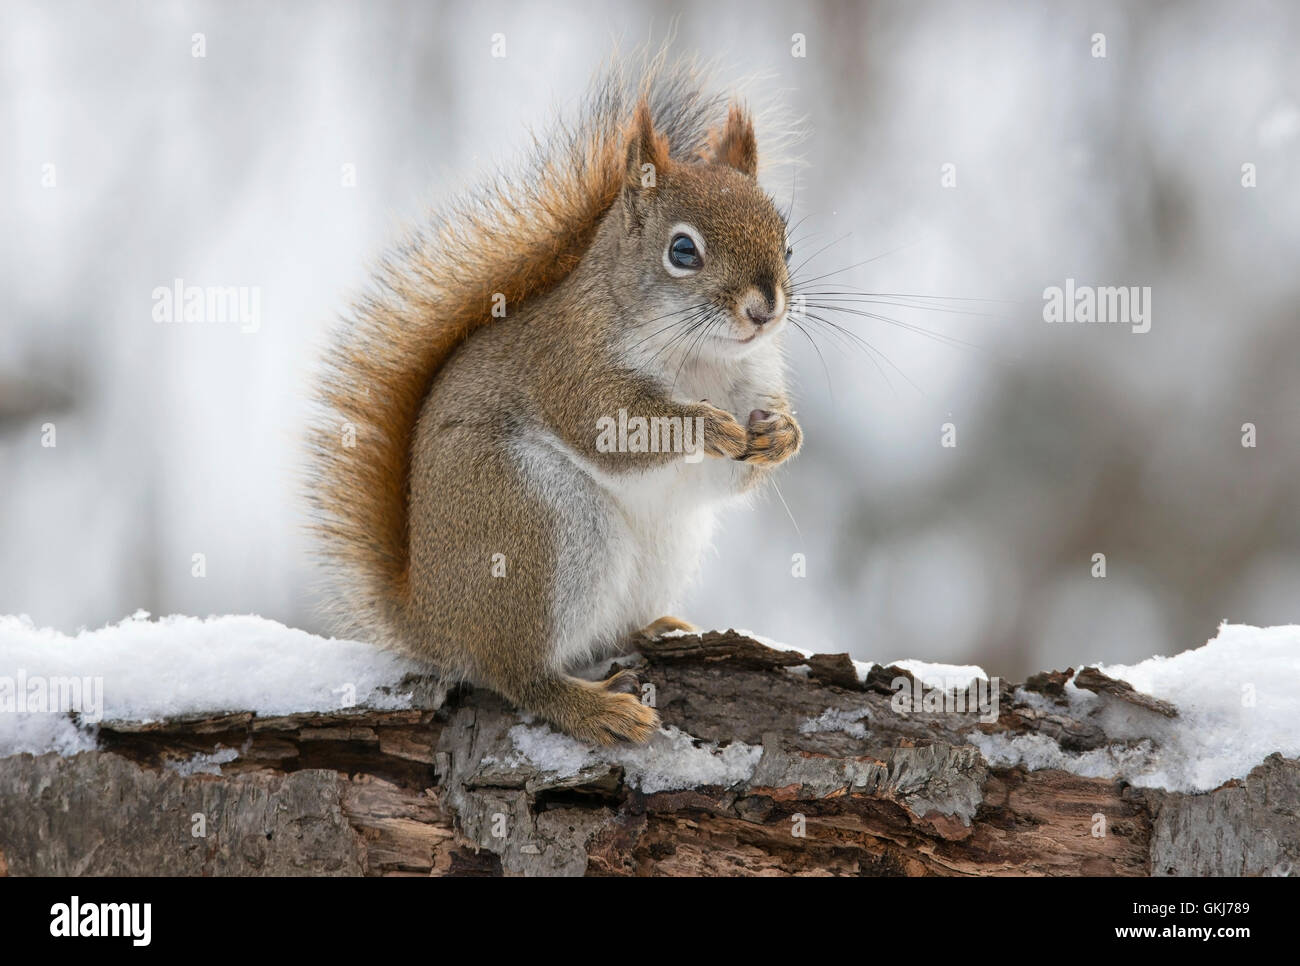 Eastern Red Squirrel searching for food (Tamiasciurus or Sciurus hudsonicus), Winter, E North America - Stock Image